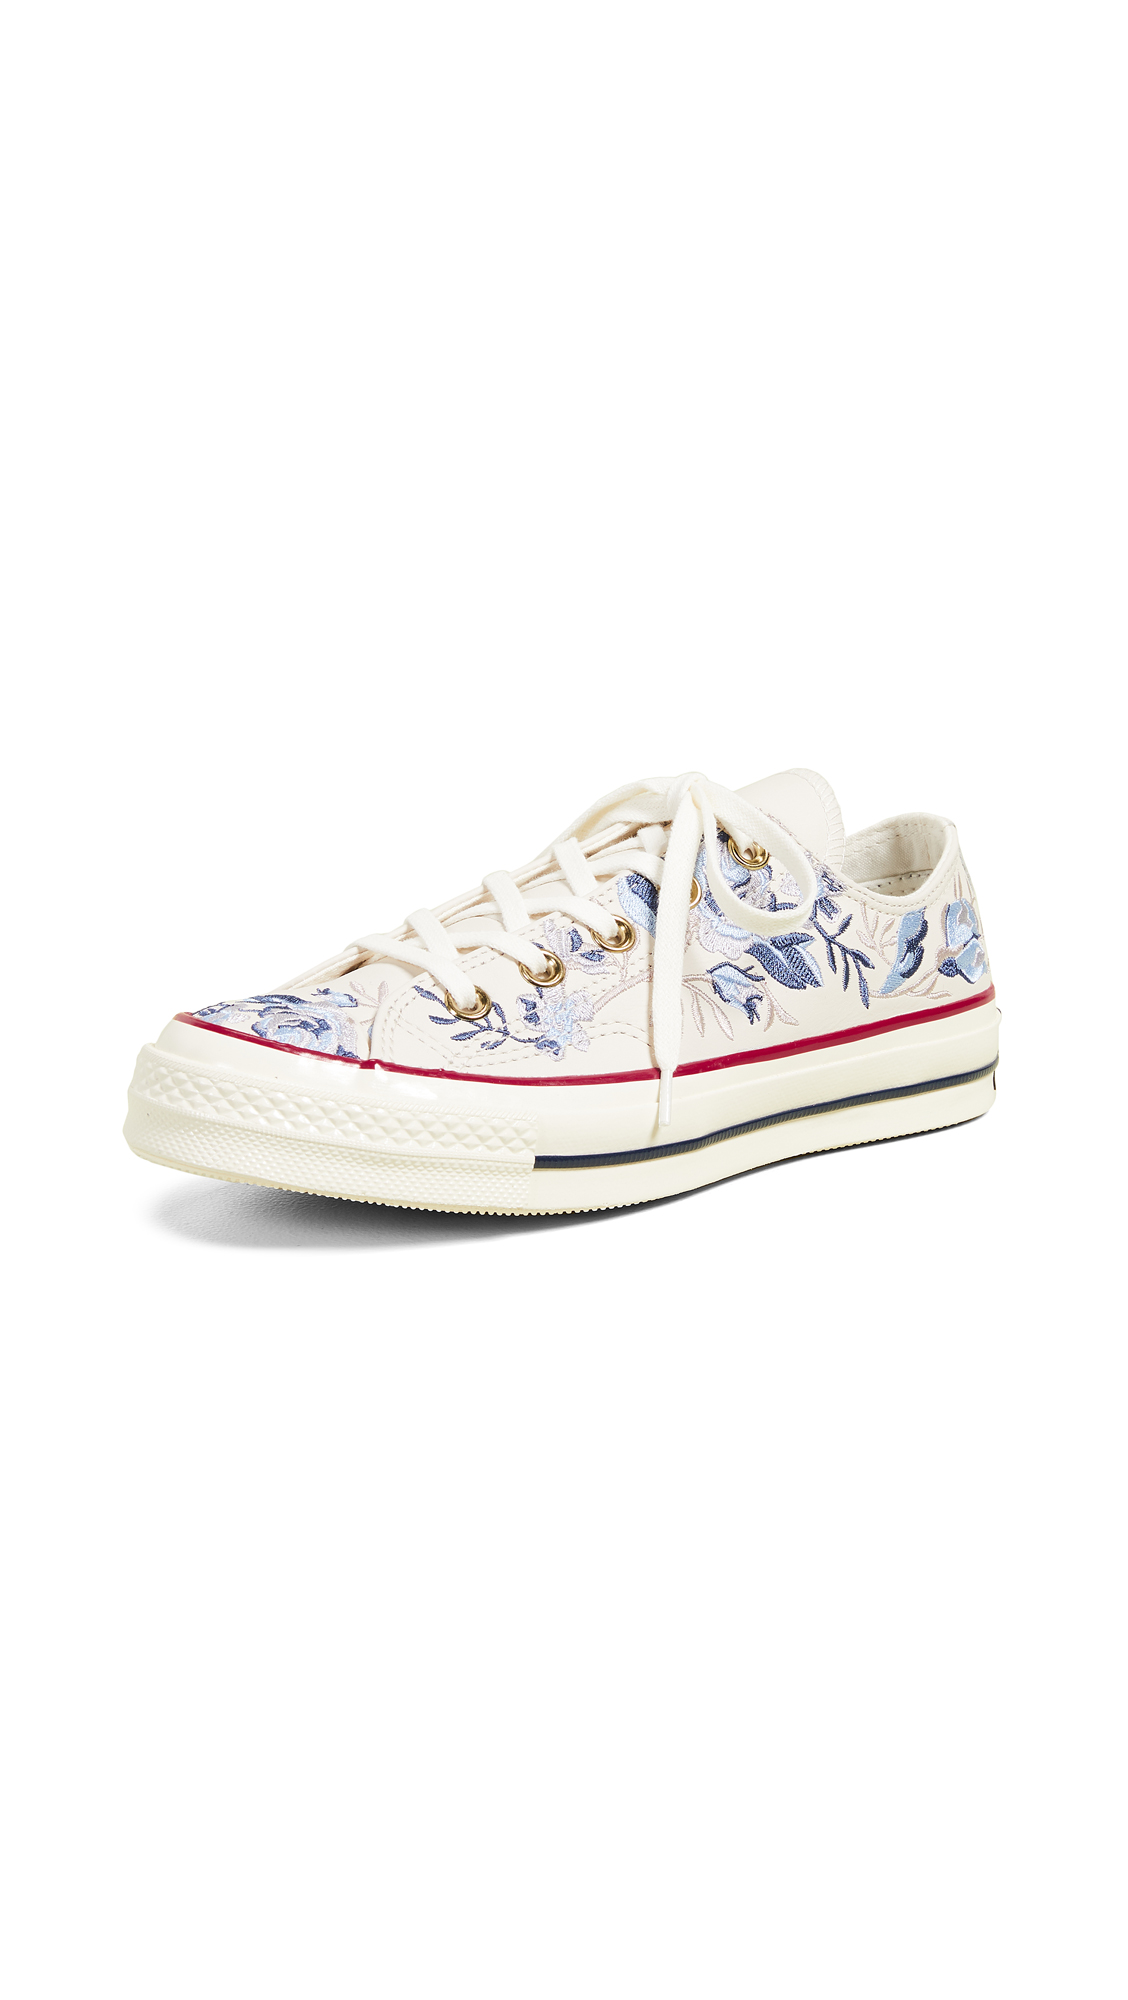 fd2e77b44921 Converse Chuck 70s Oxford Parkway Floral Sneakers In Driftwood Provence  Purple